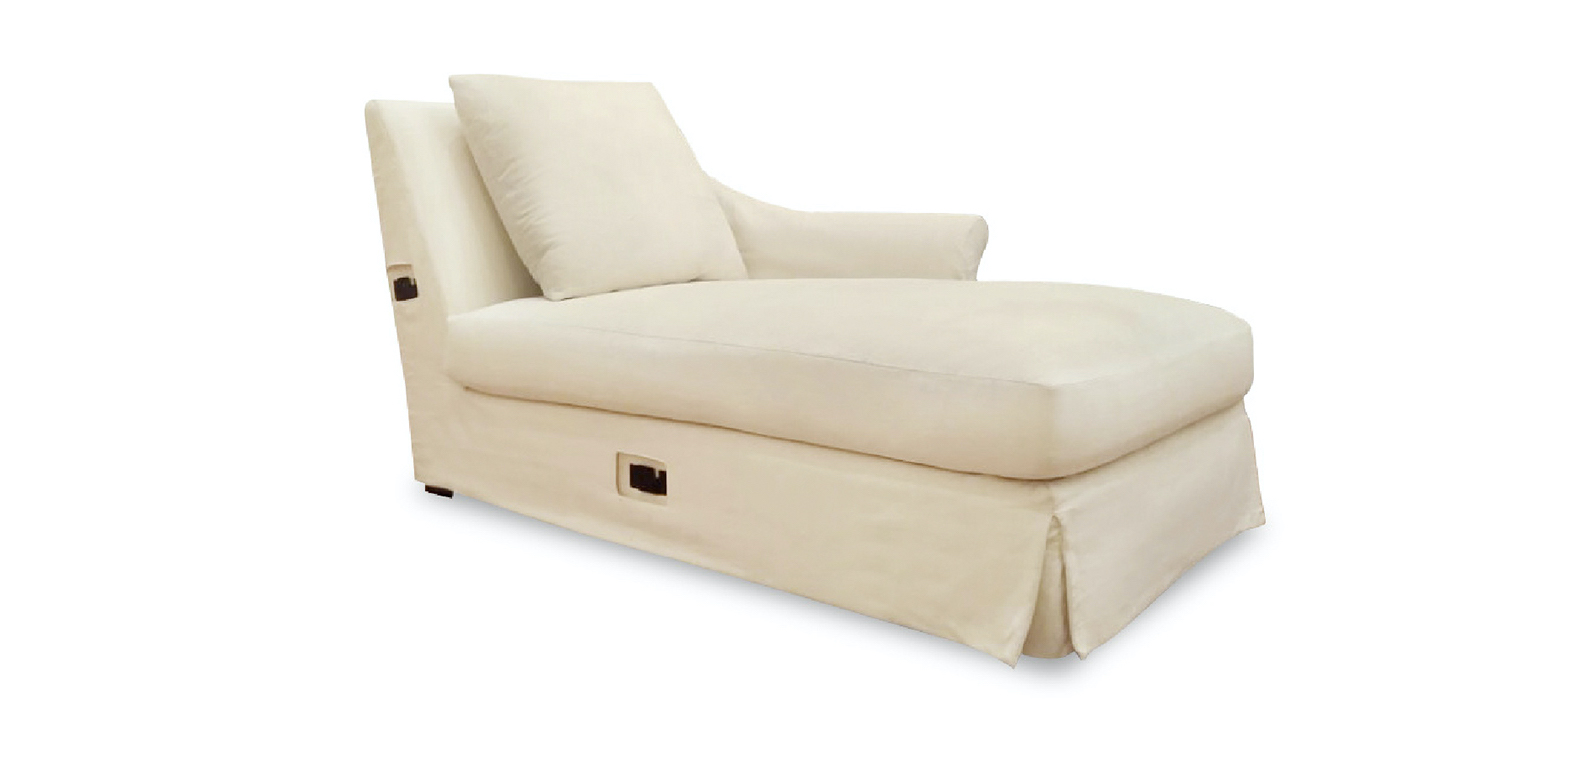 ANTIVES CHAISE LONGUE WITH LEFT ARM